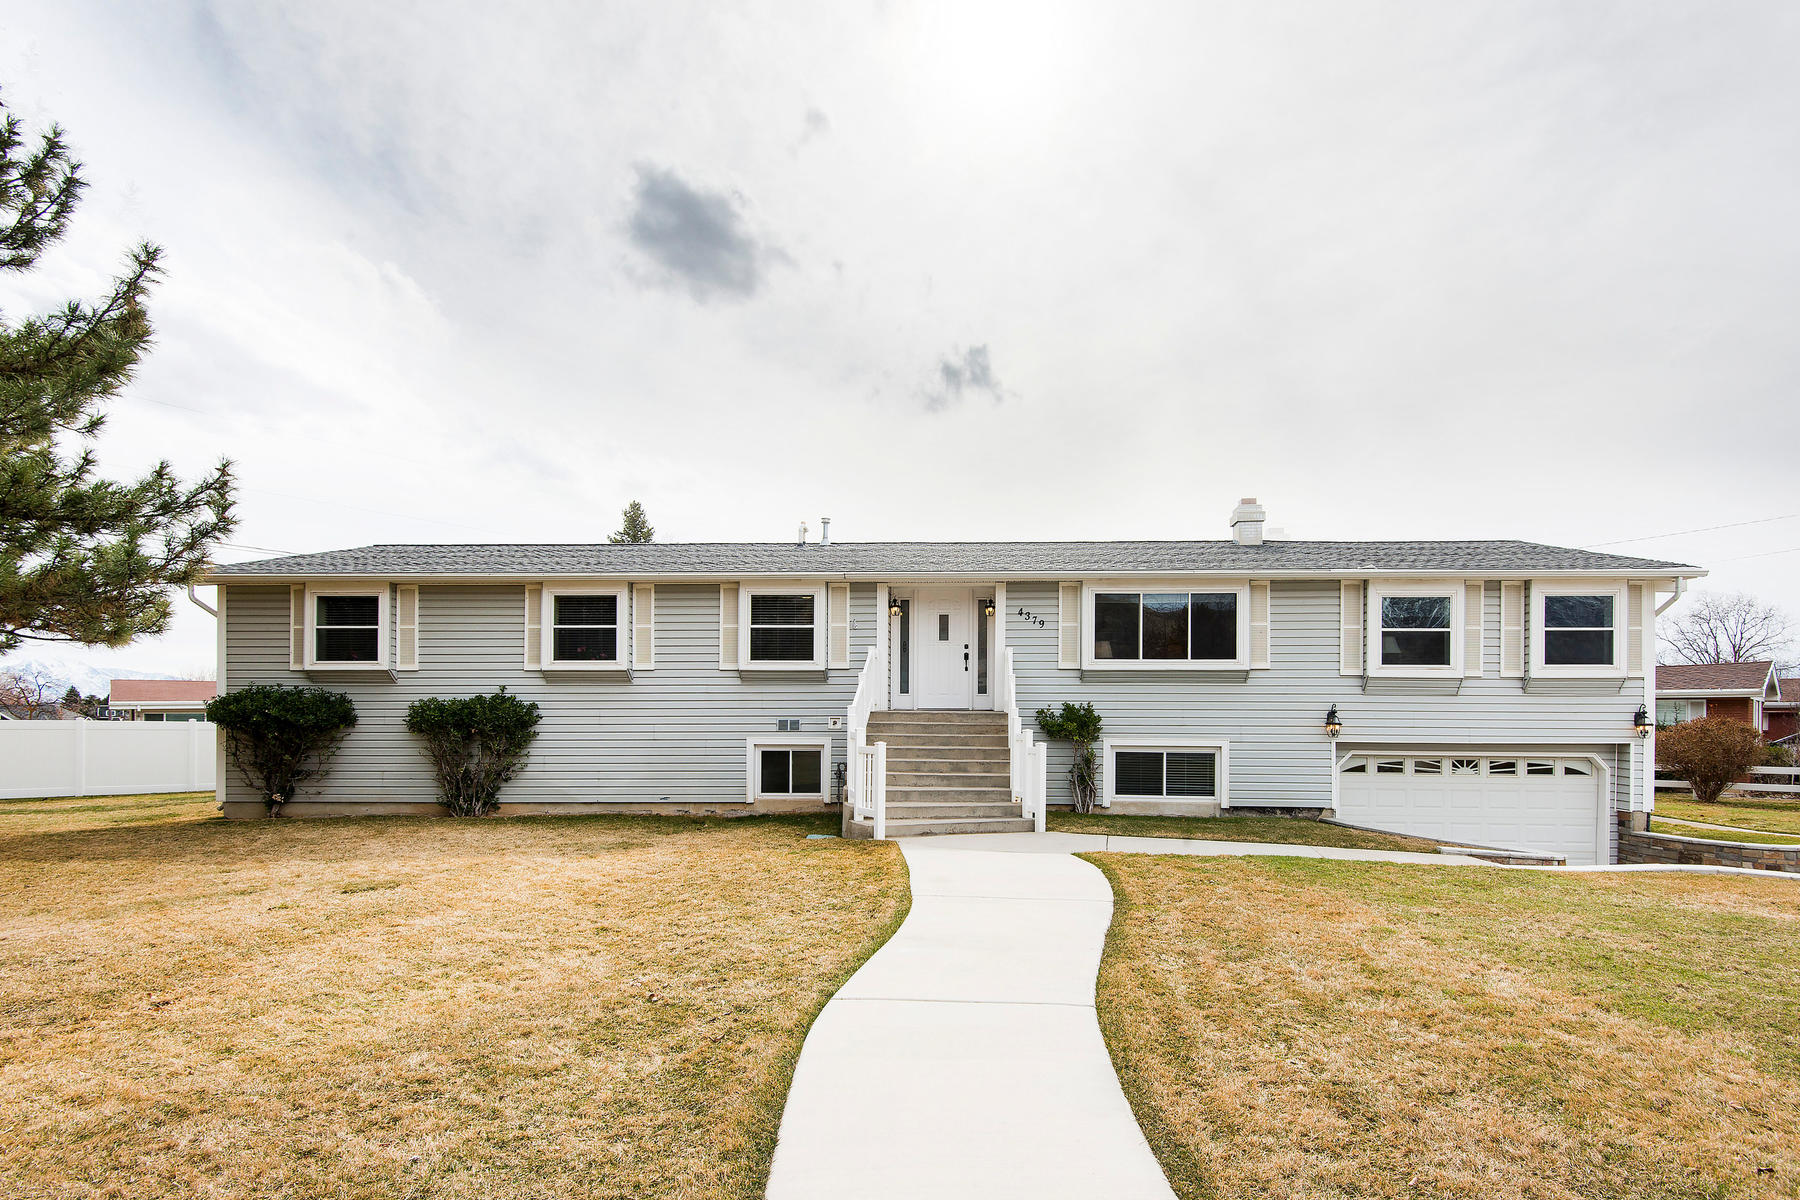 Single Family Home for Sale at Beautifully Maintained and Updated Home 4379 North 250 East Provo, Utah 84604 United States